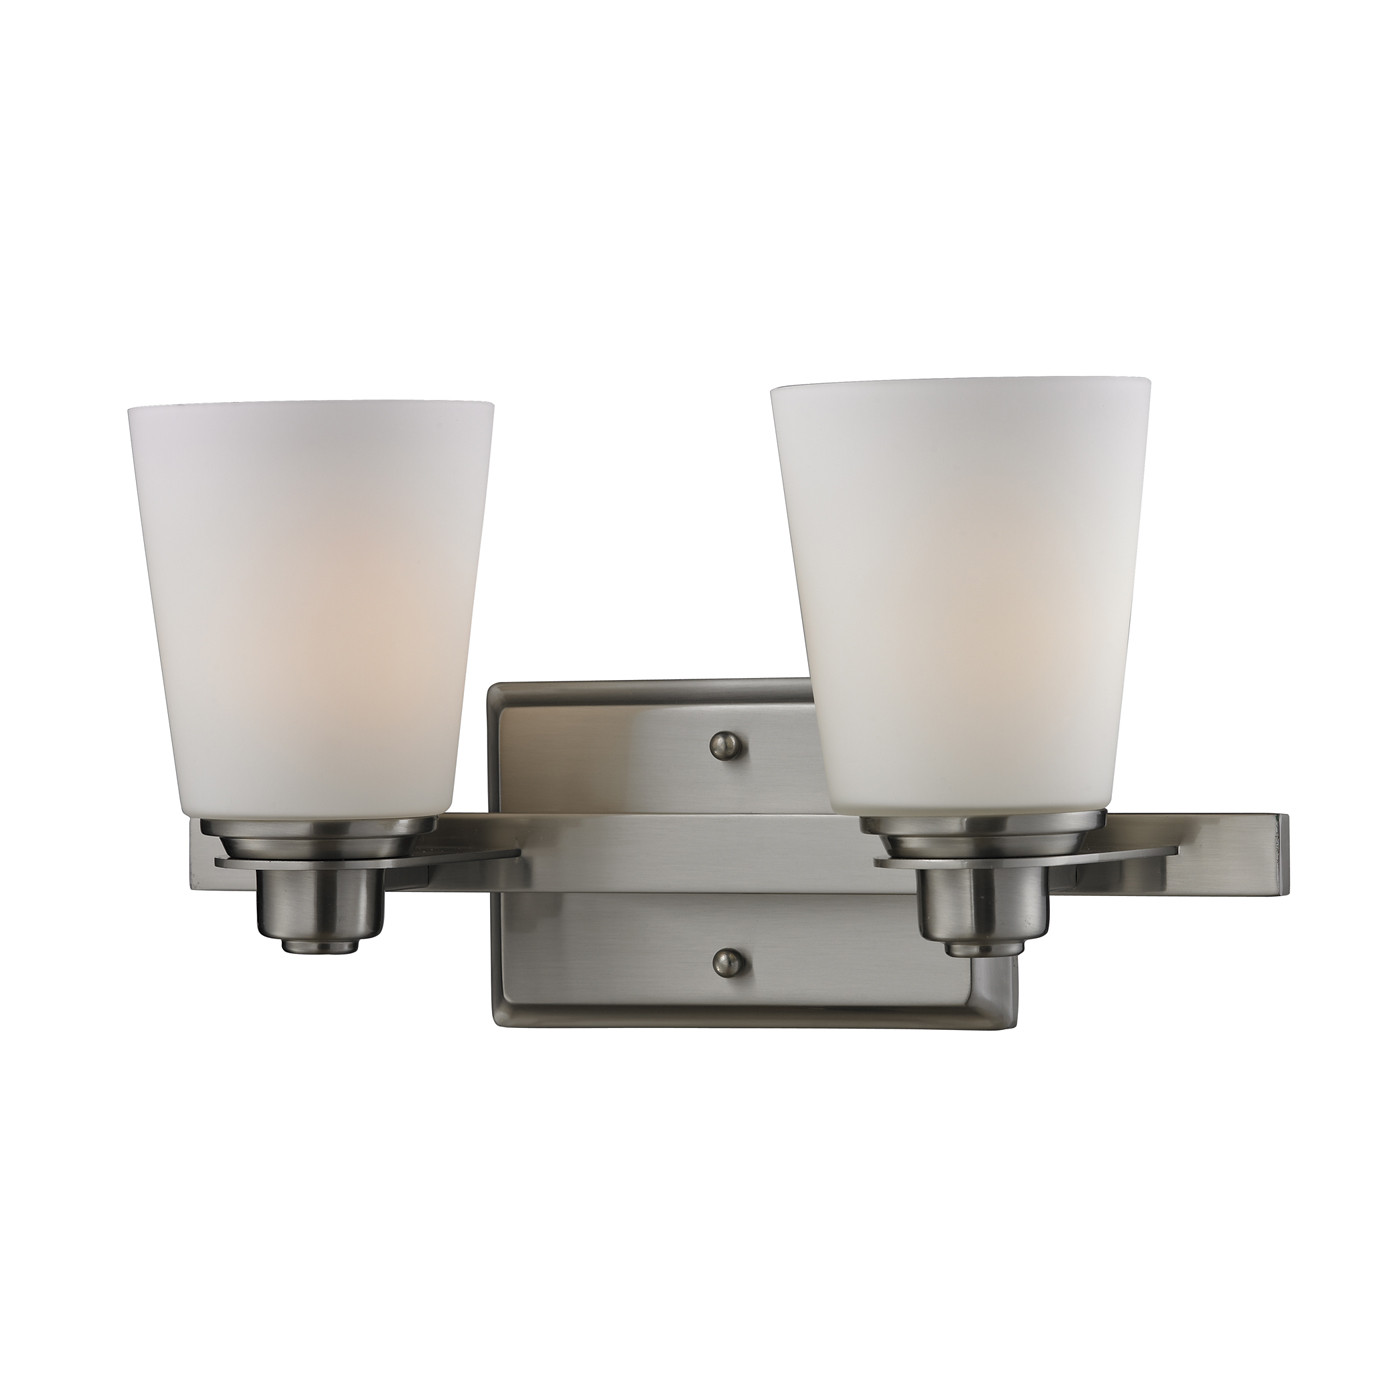 Best ideas about Bathroom Light Fixtures Lowes . Save or Pin 22 Cool Bathroom Lighting Fixtures Lowes Now.